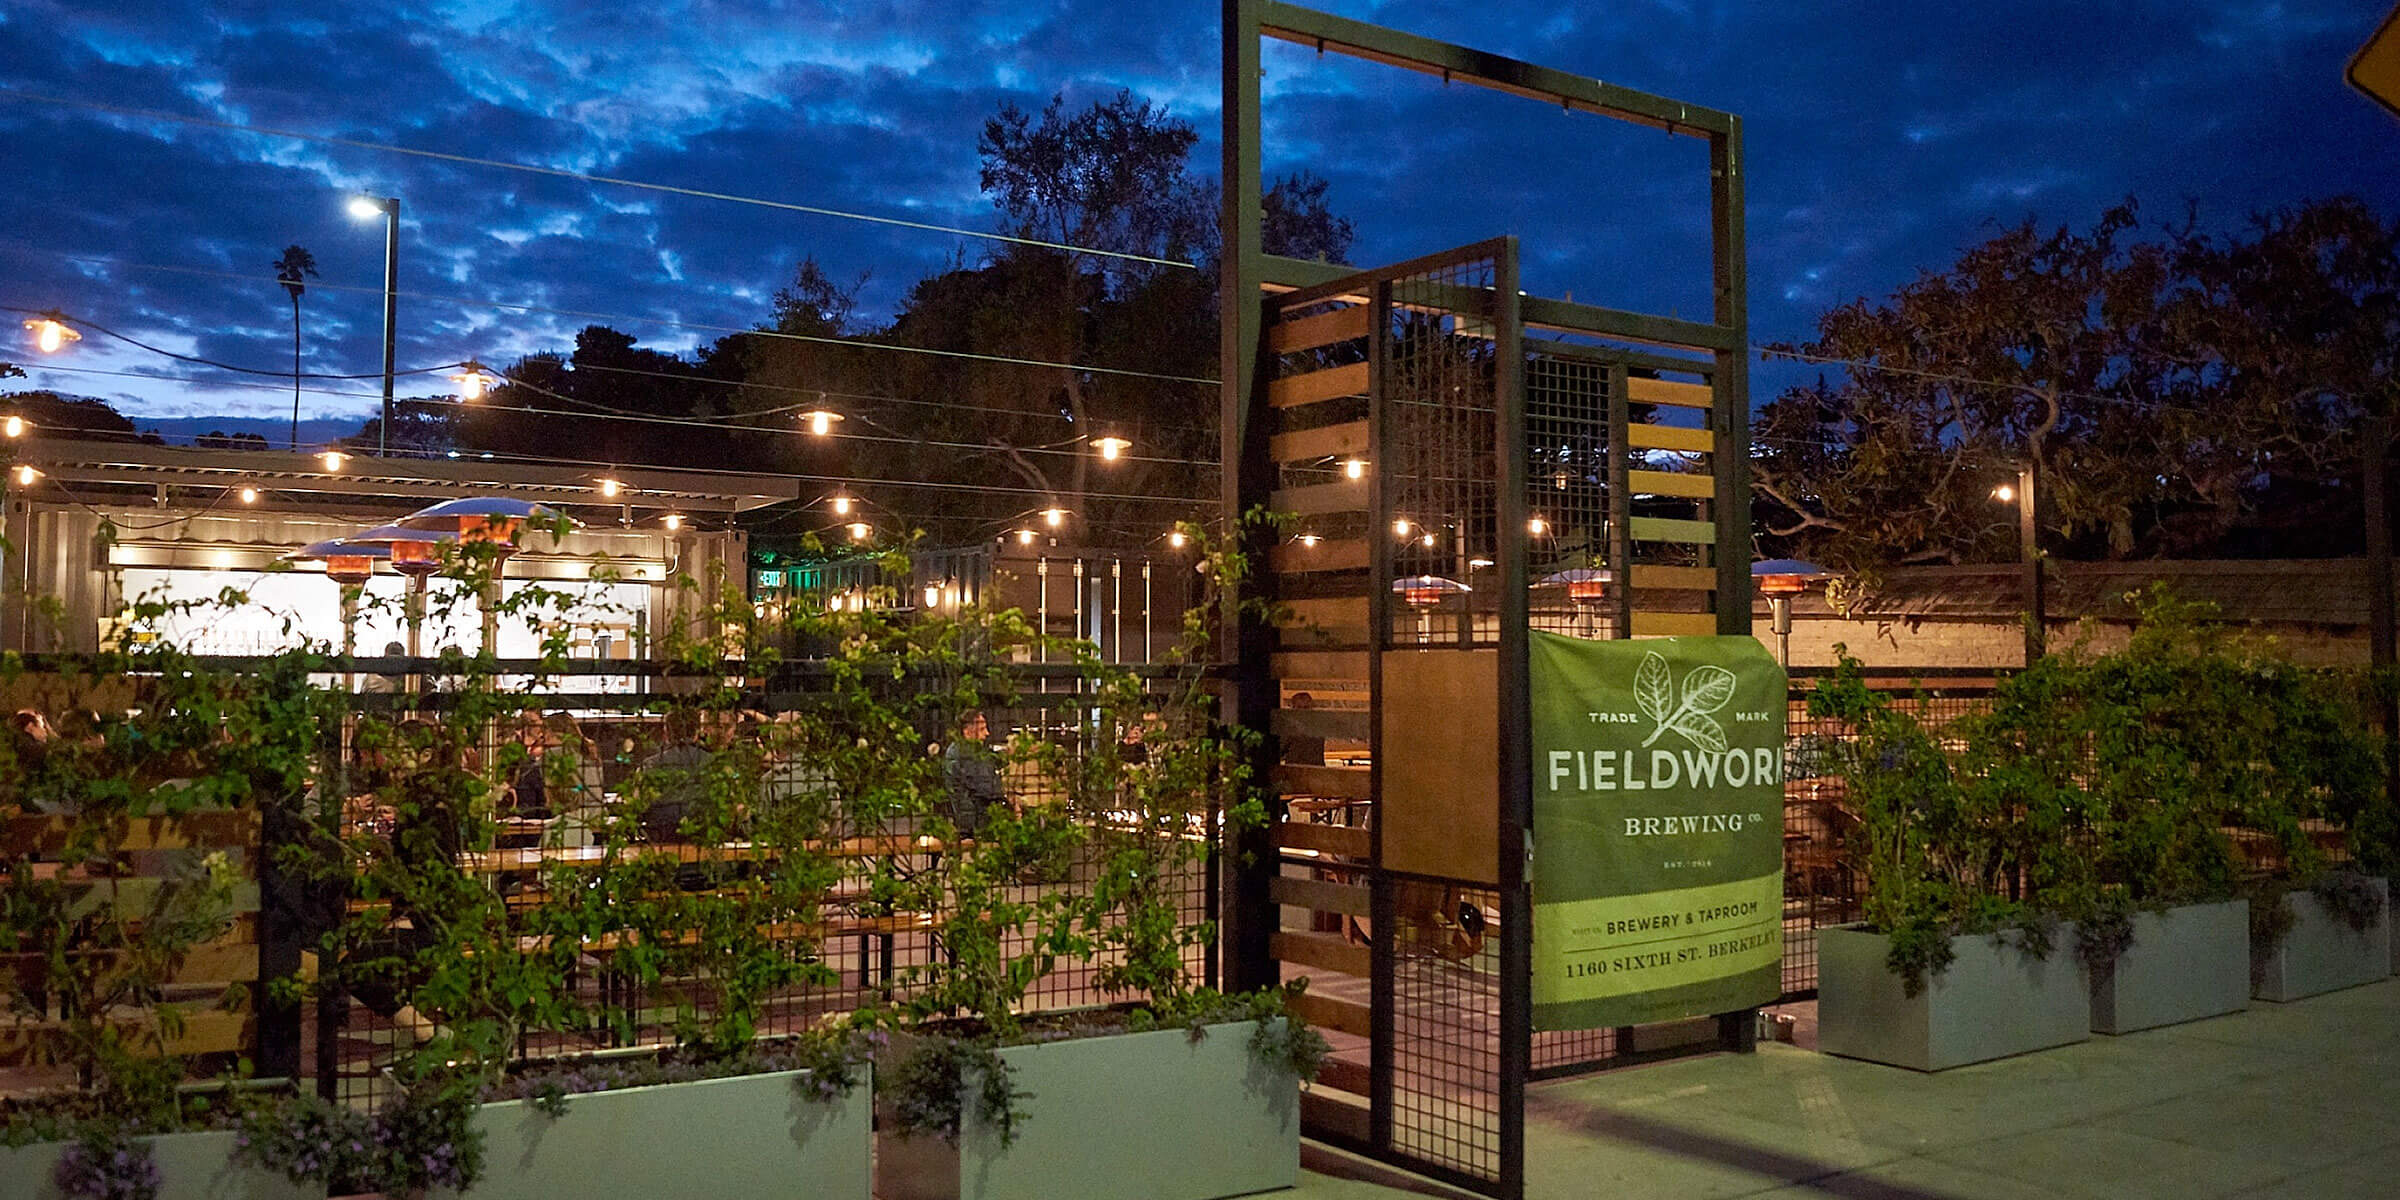 Outside the taproom at the Fieldwork Brewing Company location in Berkeley, California